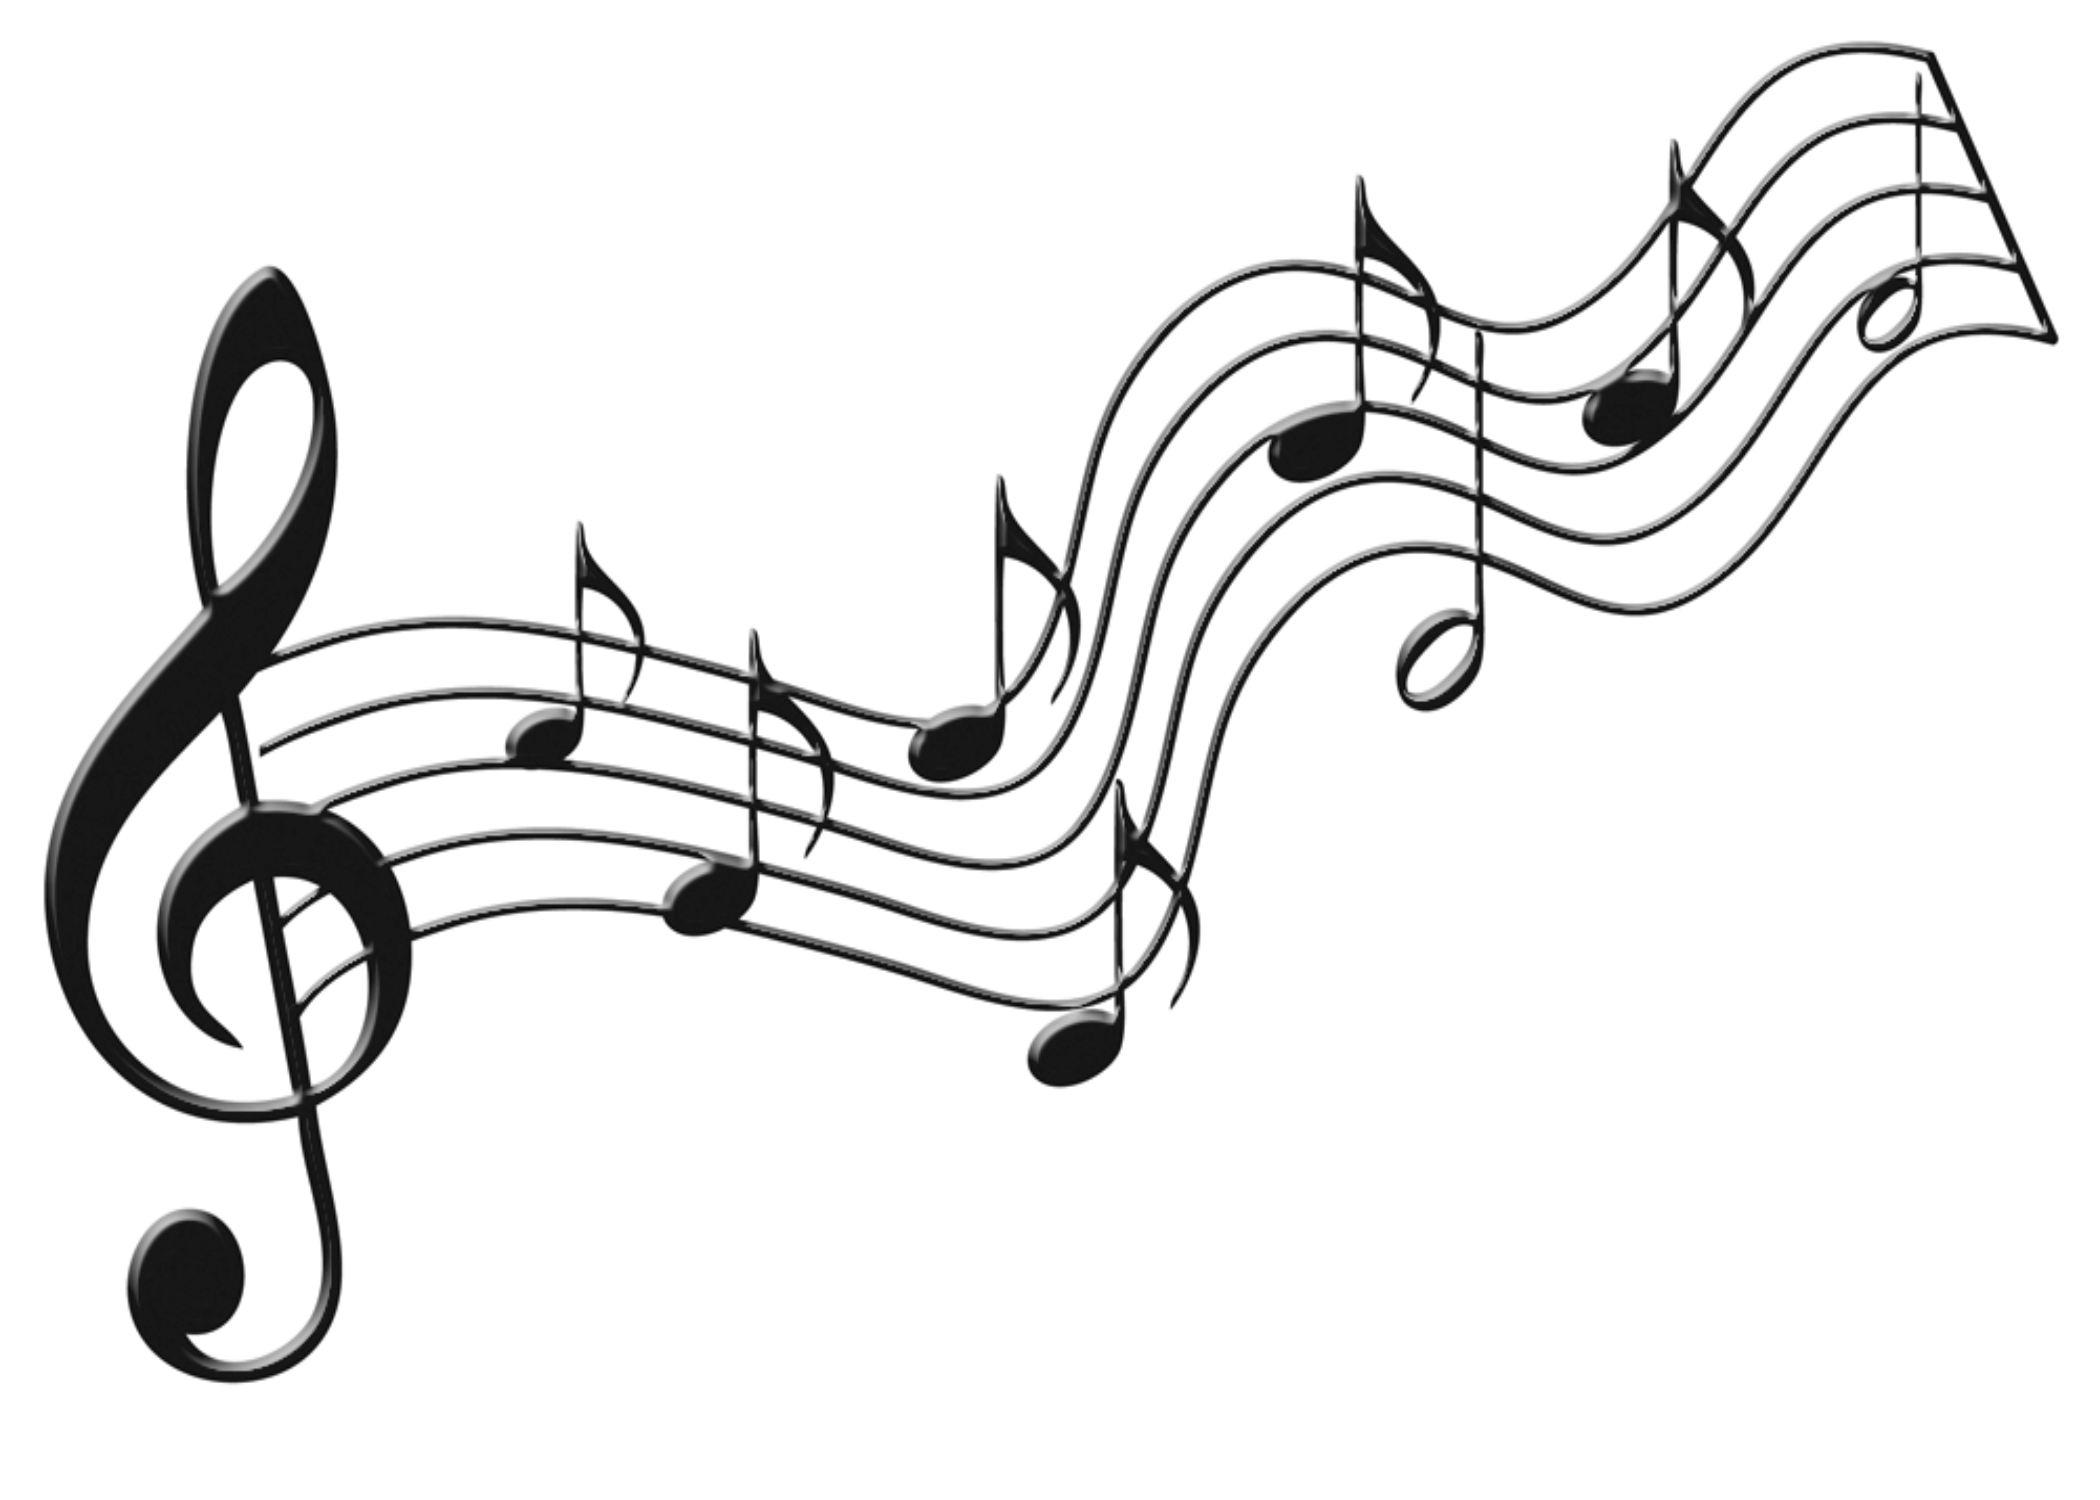 Portable Network Graphics Musical note Image Clef.